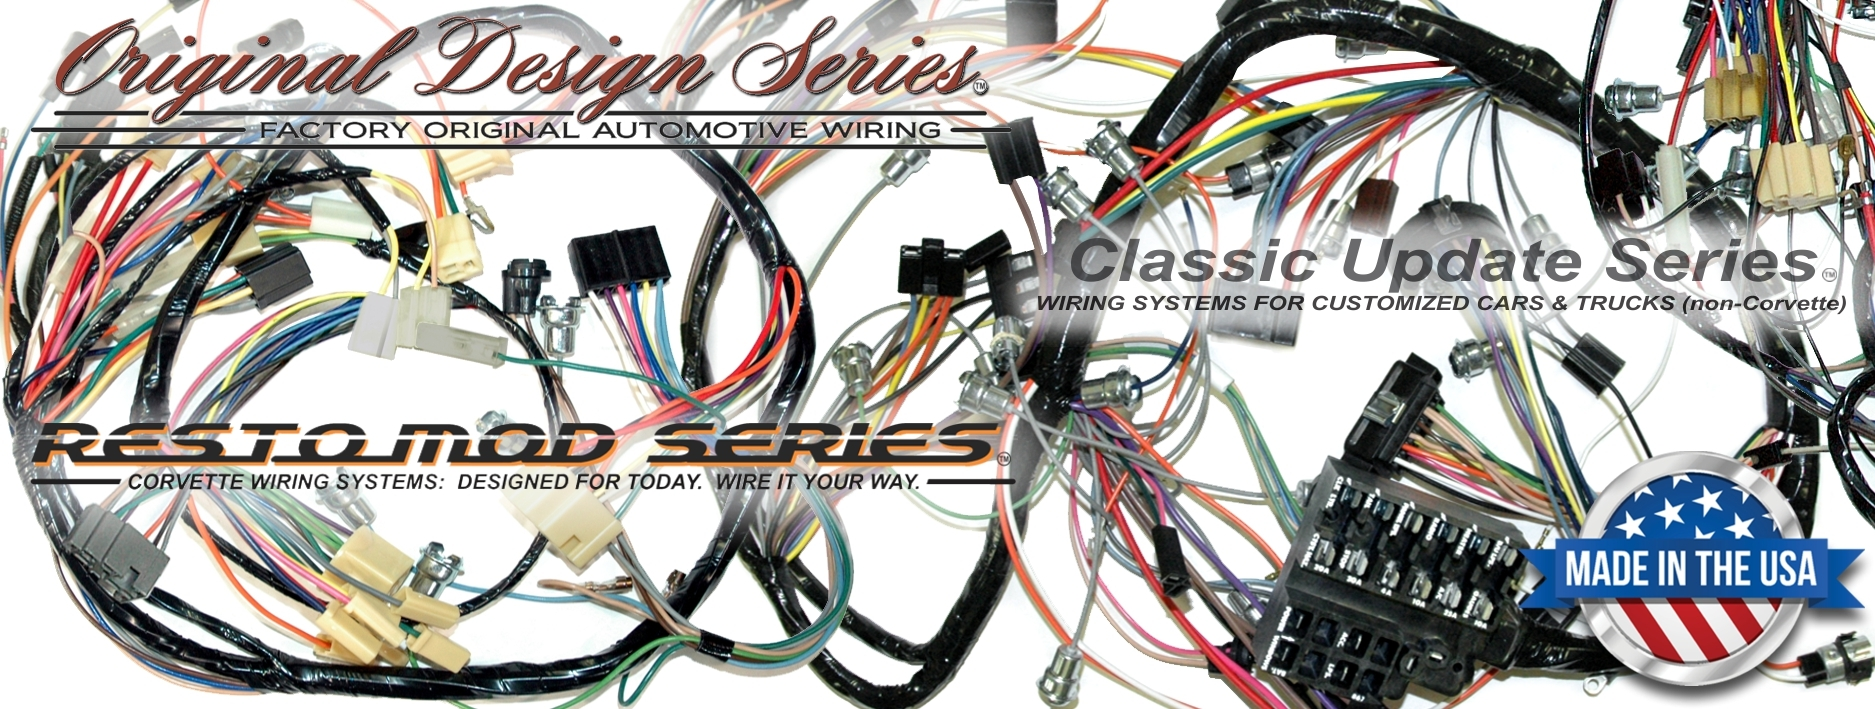 hight resolution of 1977 tran am wiring harness wiring diagram megaexact oem reproduction wiring harnesses and restomod wiring systems